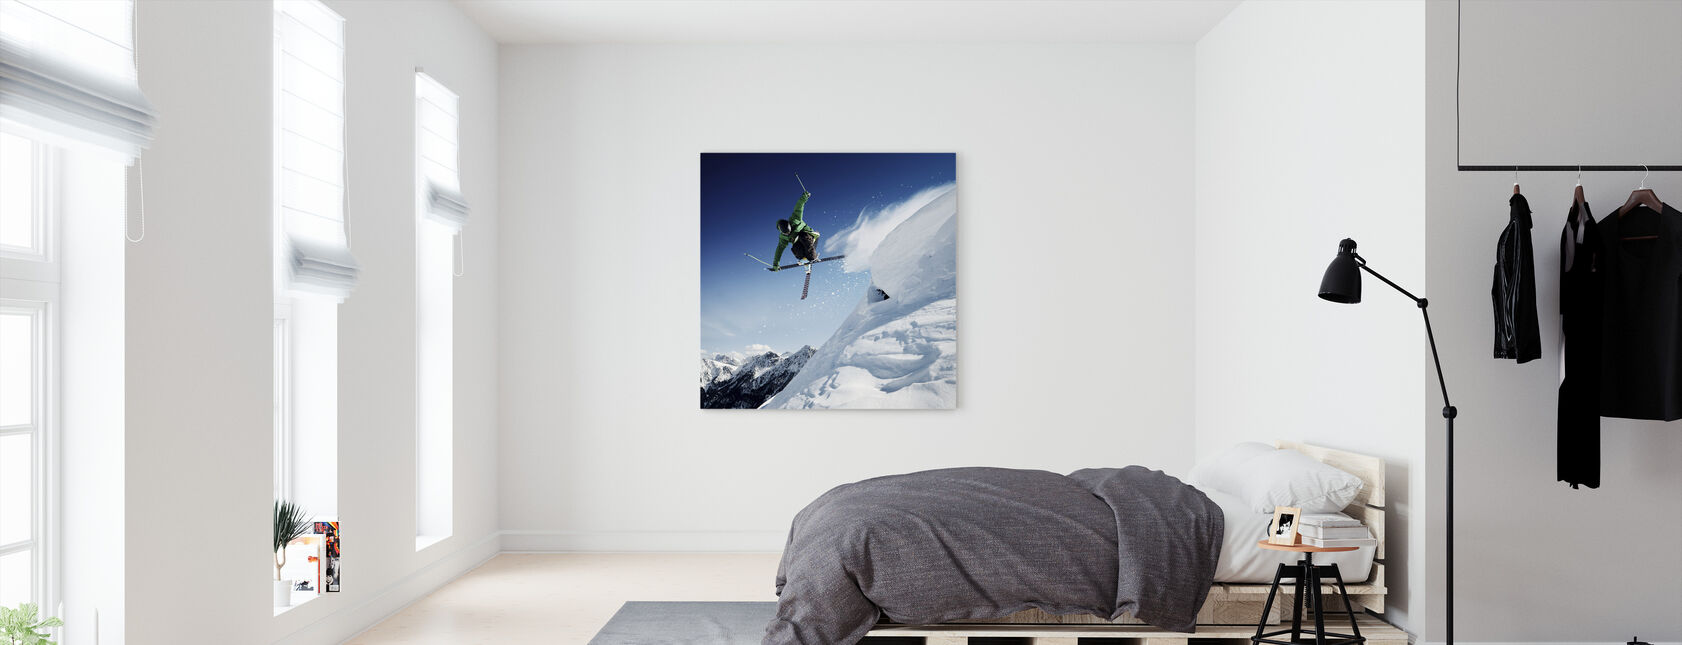 Jumping Skier - Canvas print - Bedroom